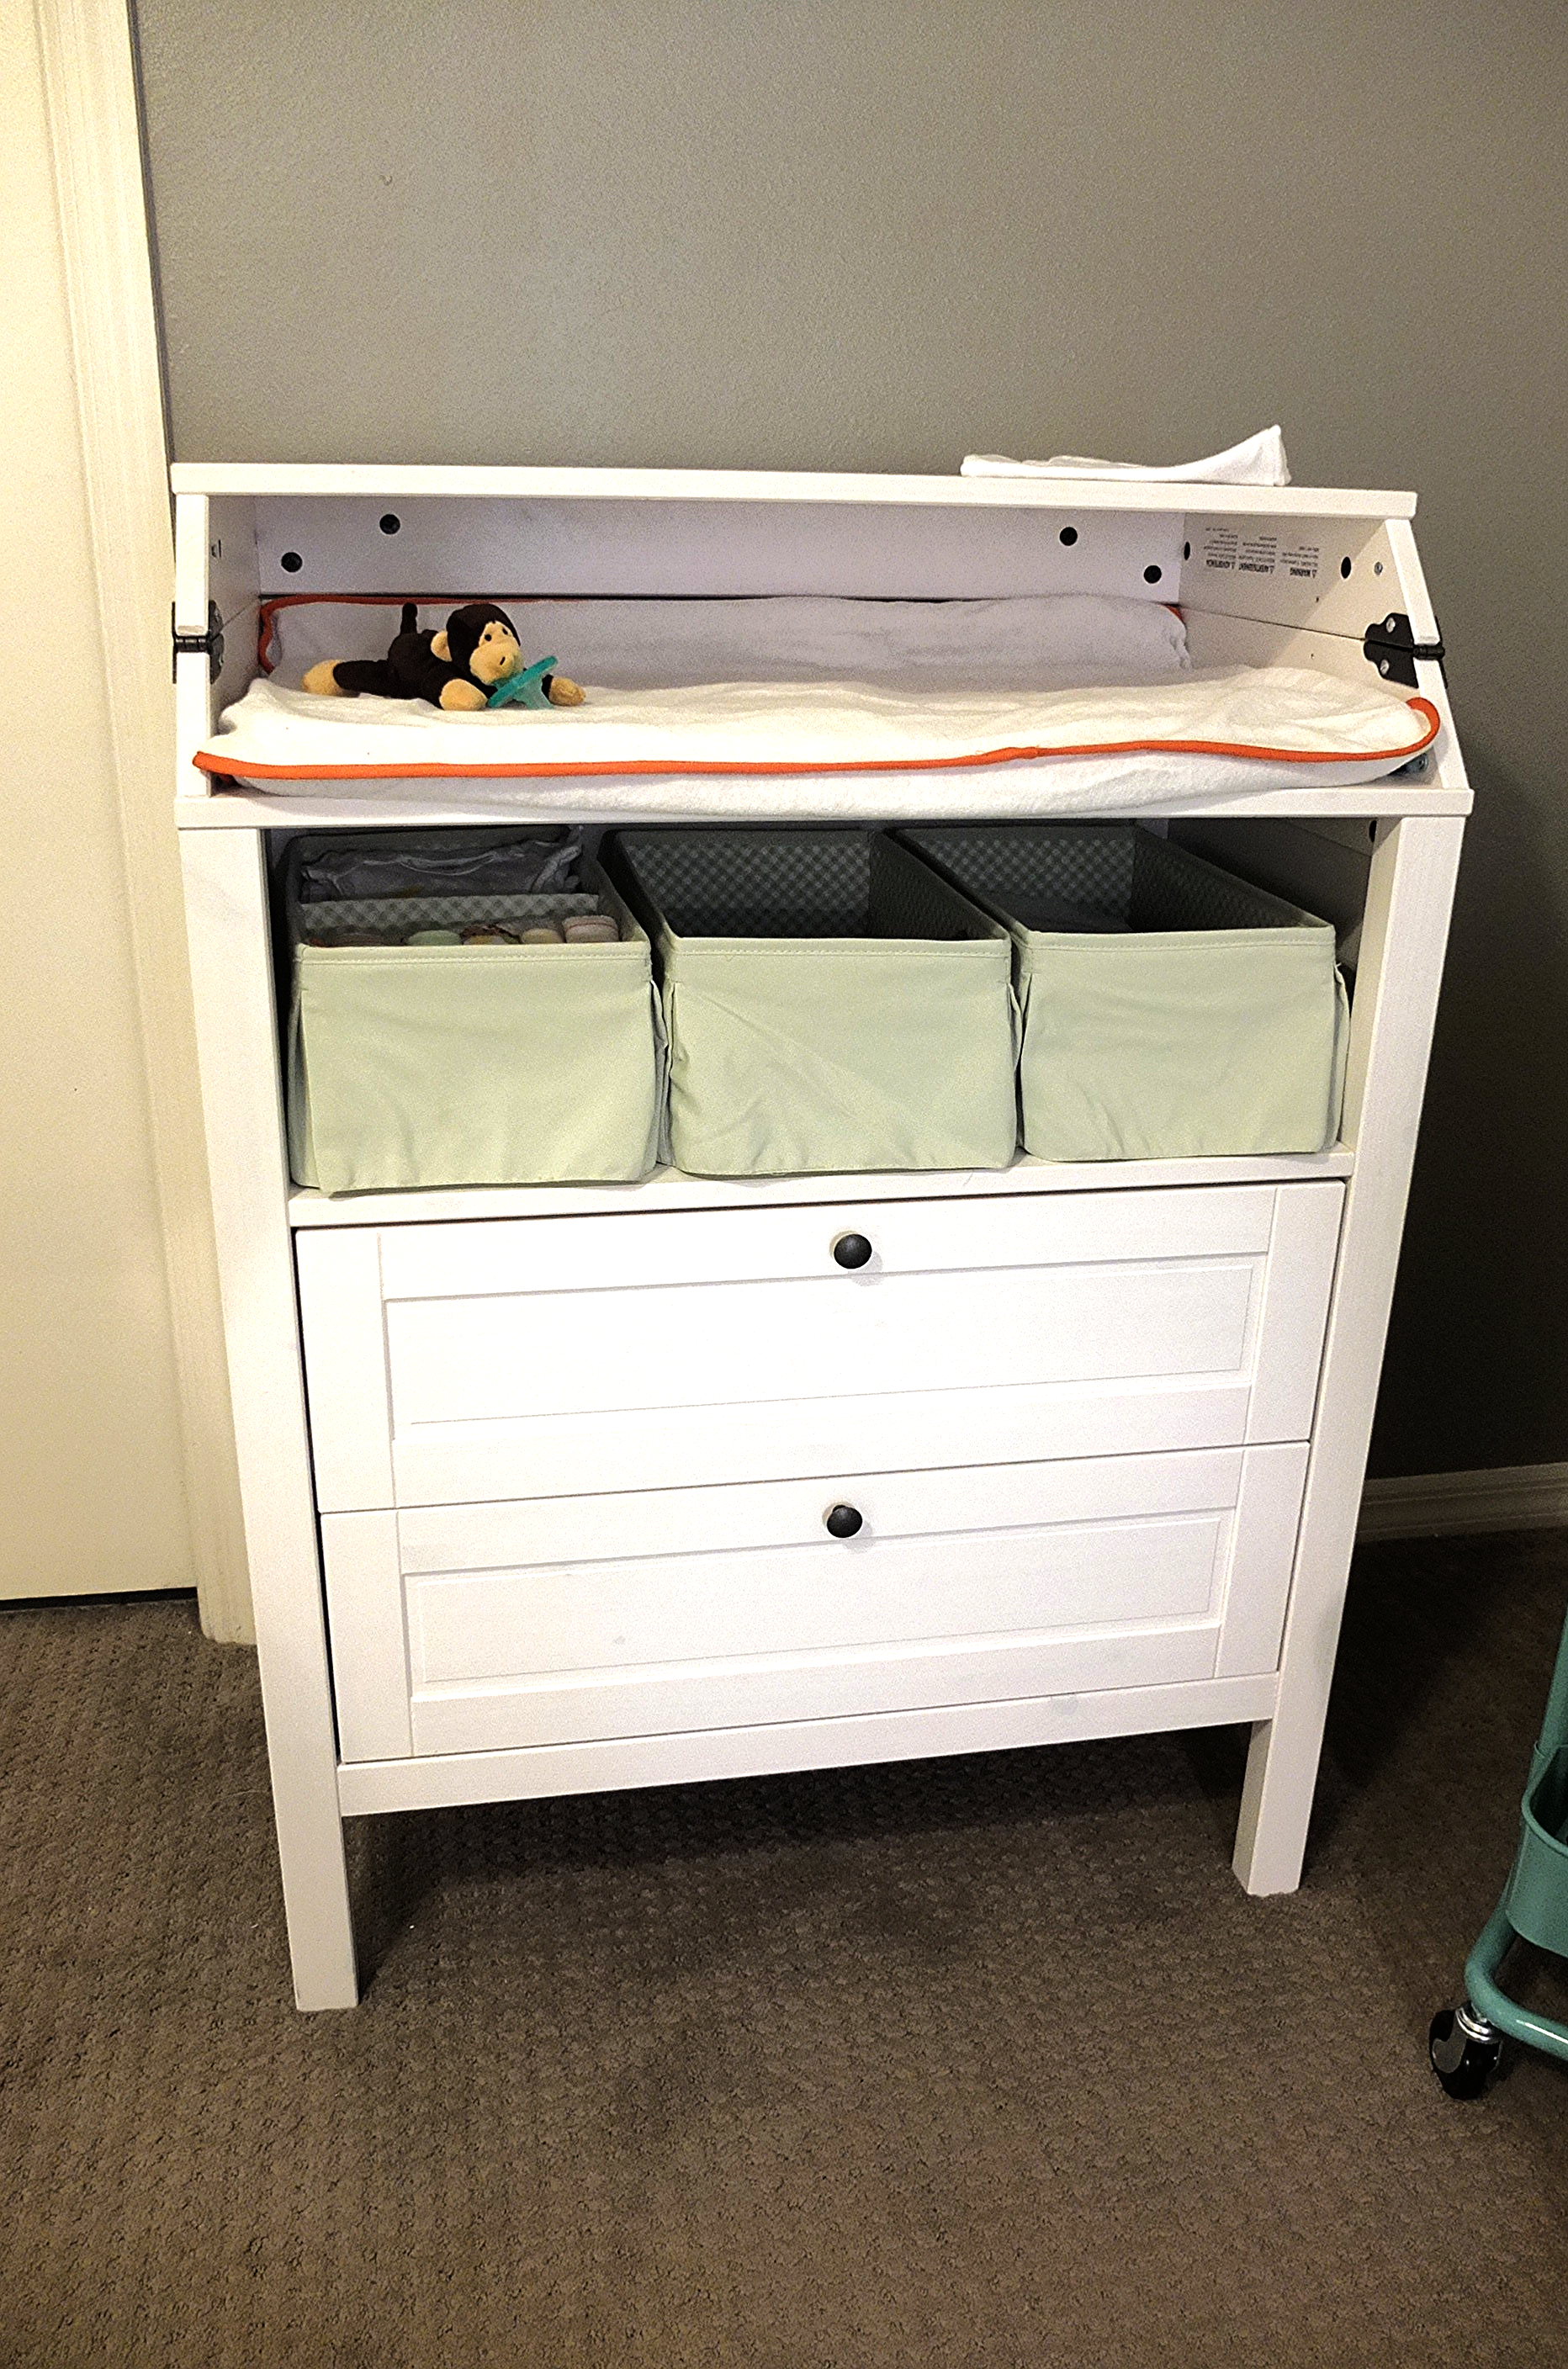 Delicieux SUNDVIK Changing Table Has Open Storage Up Top (so You Can Reach Supplies  While Keeping